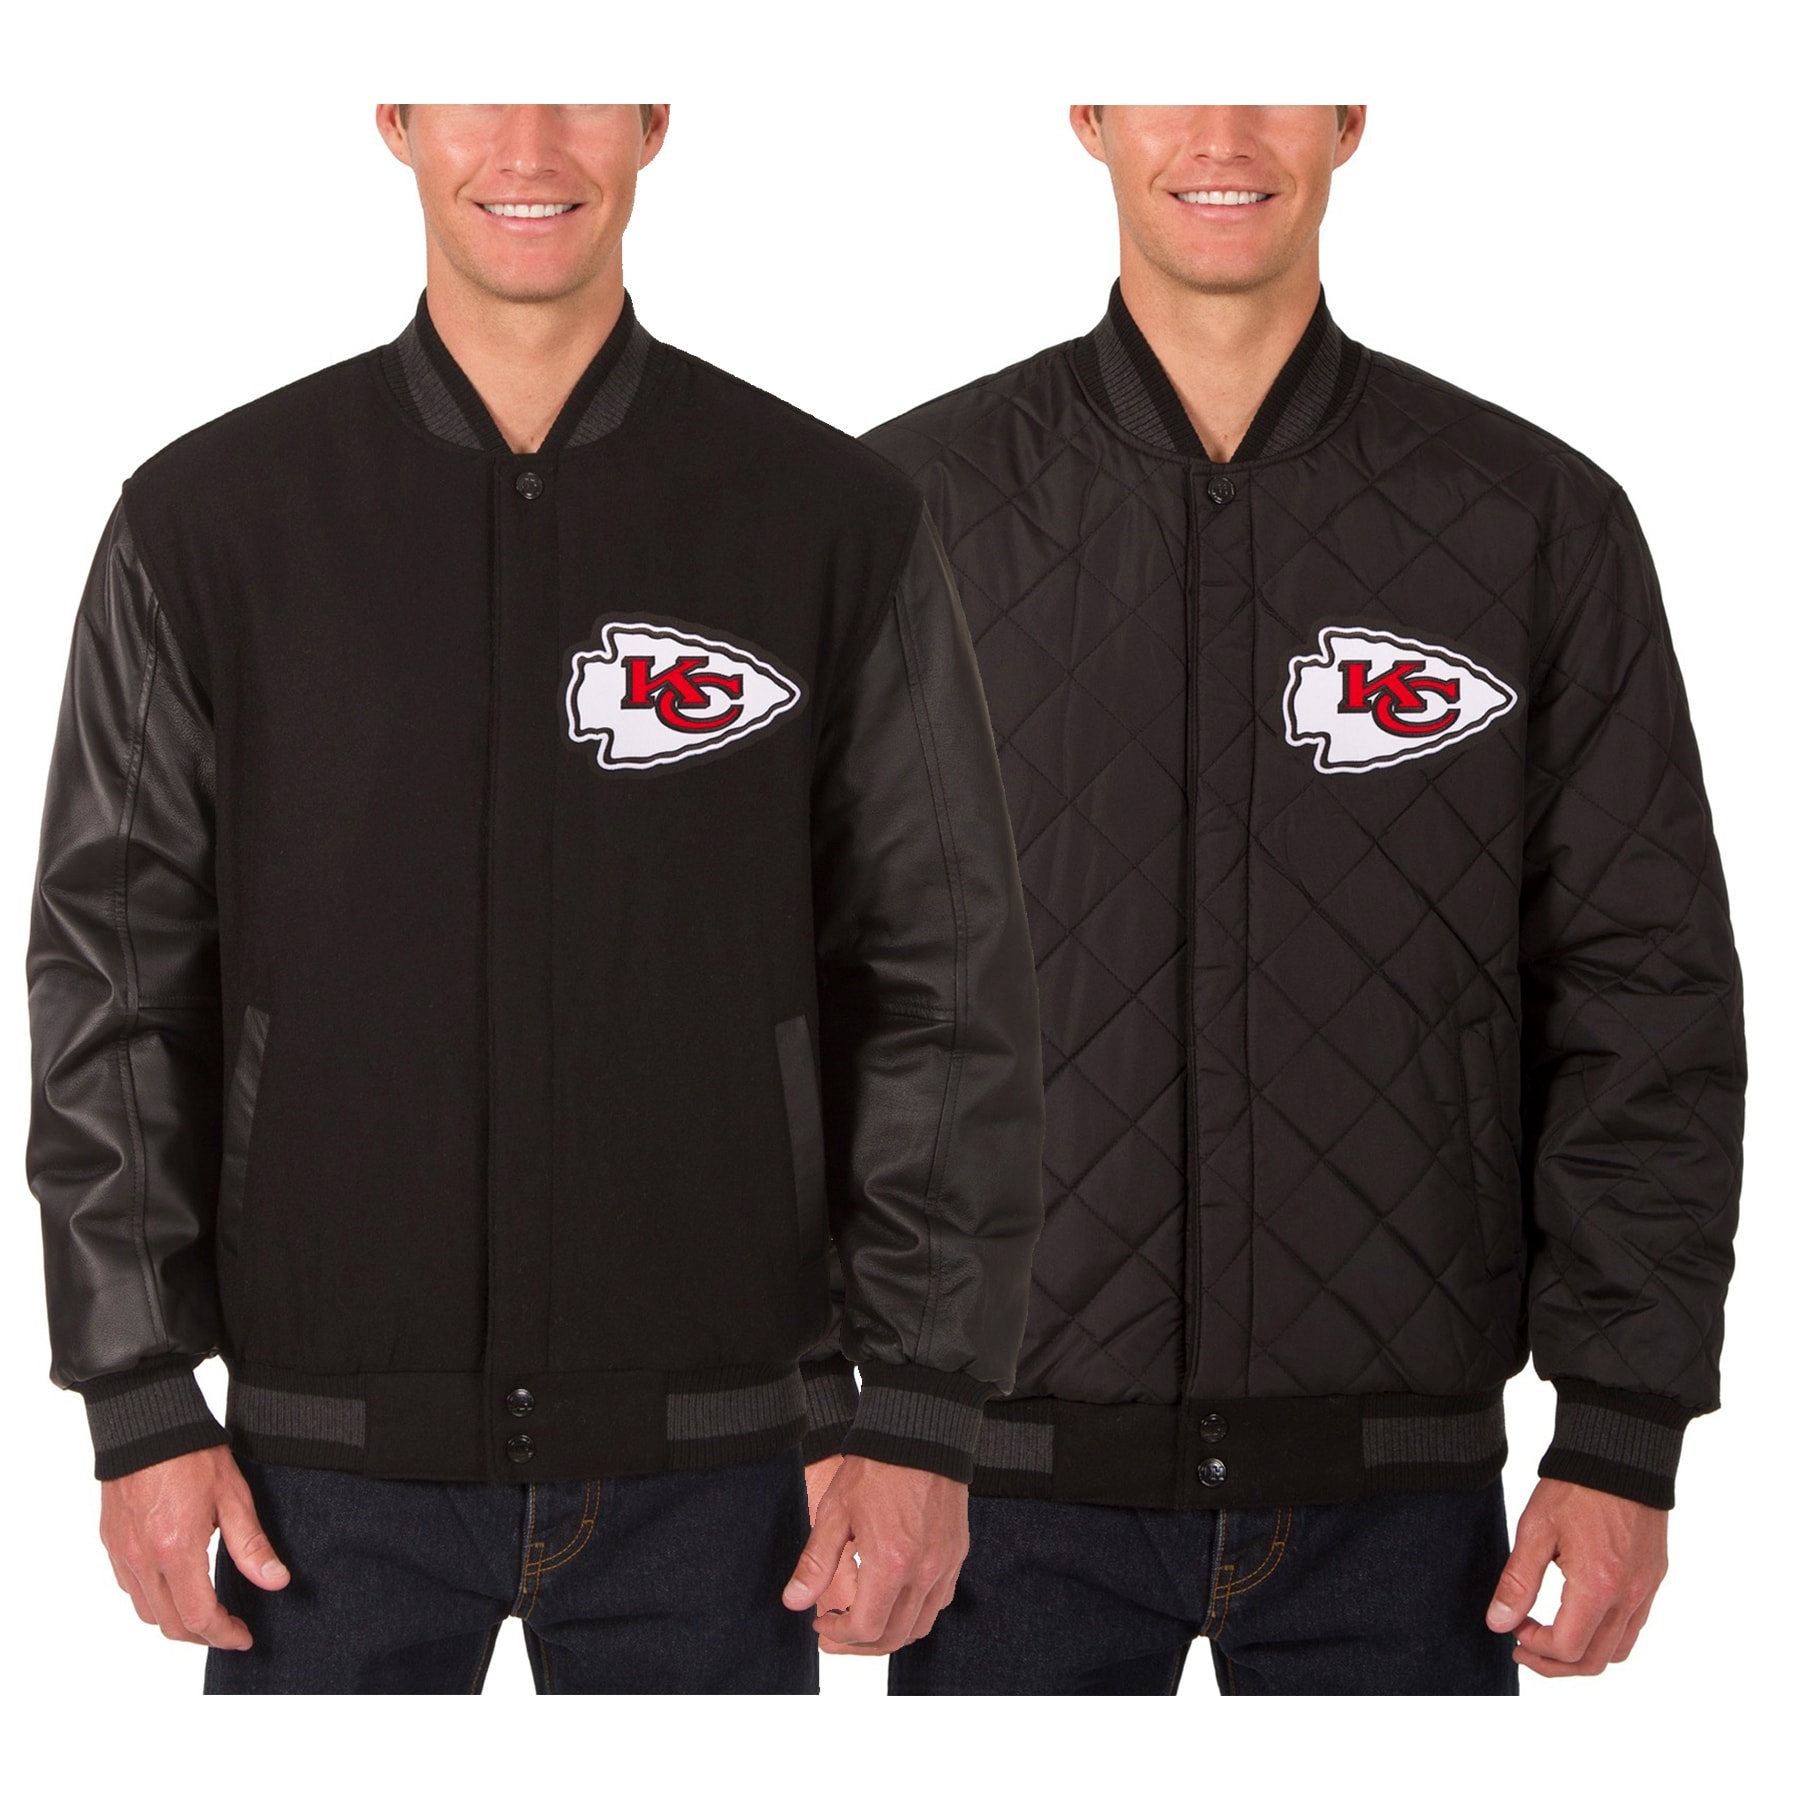 Kansas City Chiefs JH Design Wool & Leather Reversible Jacket with Embroidered Logos - Black